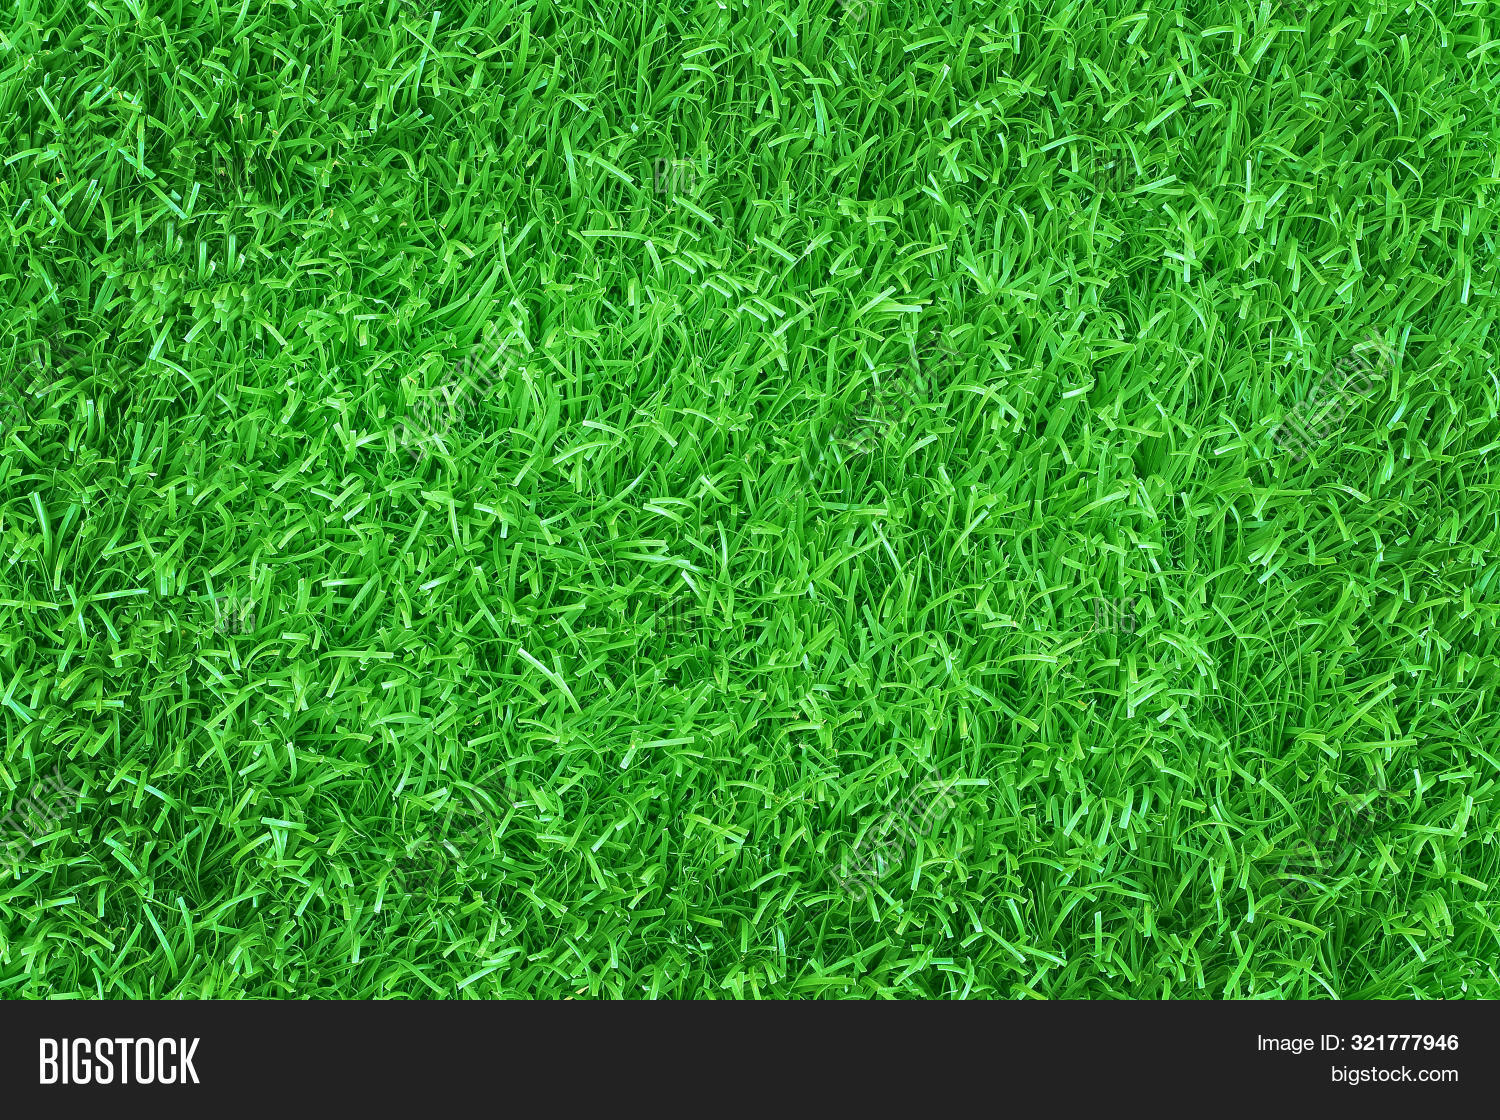 abstract,activity,artificial,backdrop,background,beautiful,blade,carpet,clean,closeup,color,decorative,design,empty,exercise,fake,field,floor,football,freshness,garden,golf,grass,grassy,green,greenery,grounds,imitation,land,lawn,leaf,meadow,nature,outdoor,park,pattern,plant,plastic,recreation,soccer,space,sport,stadium,surface,synthetic,texture,turf,view,yard